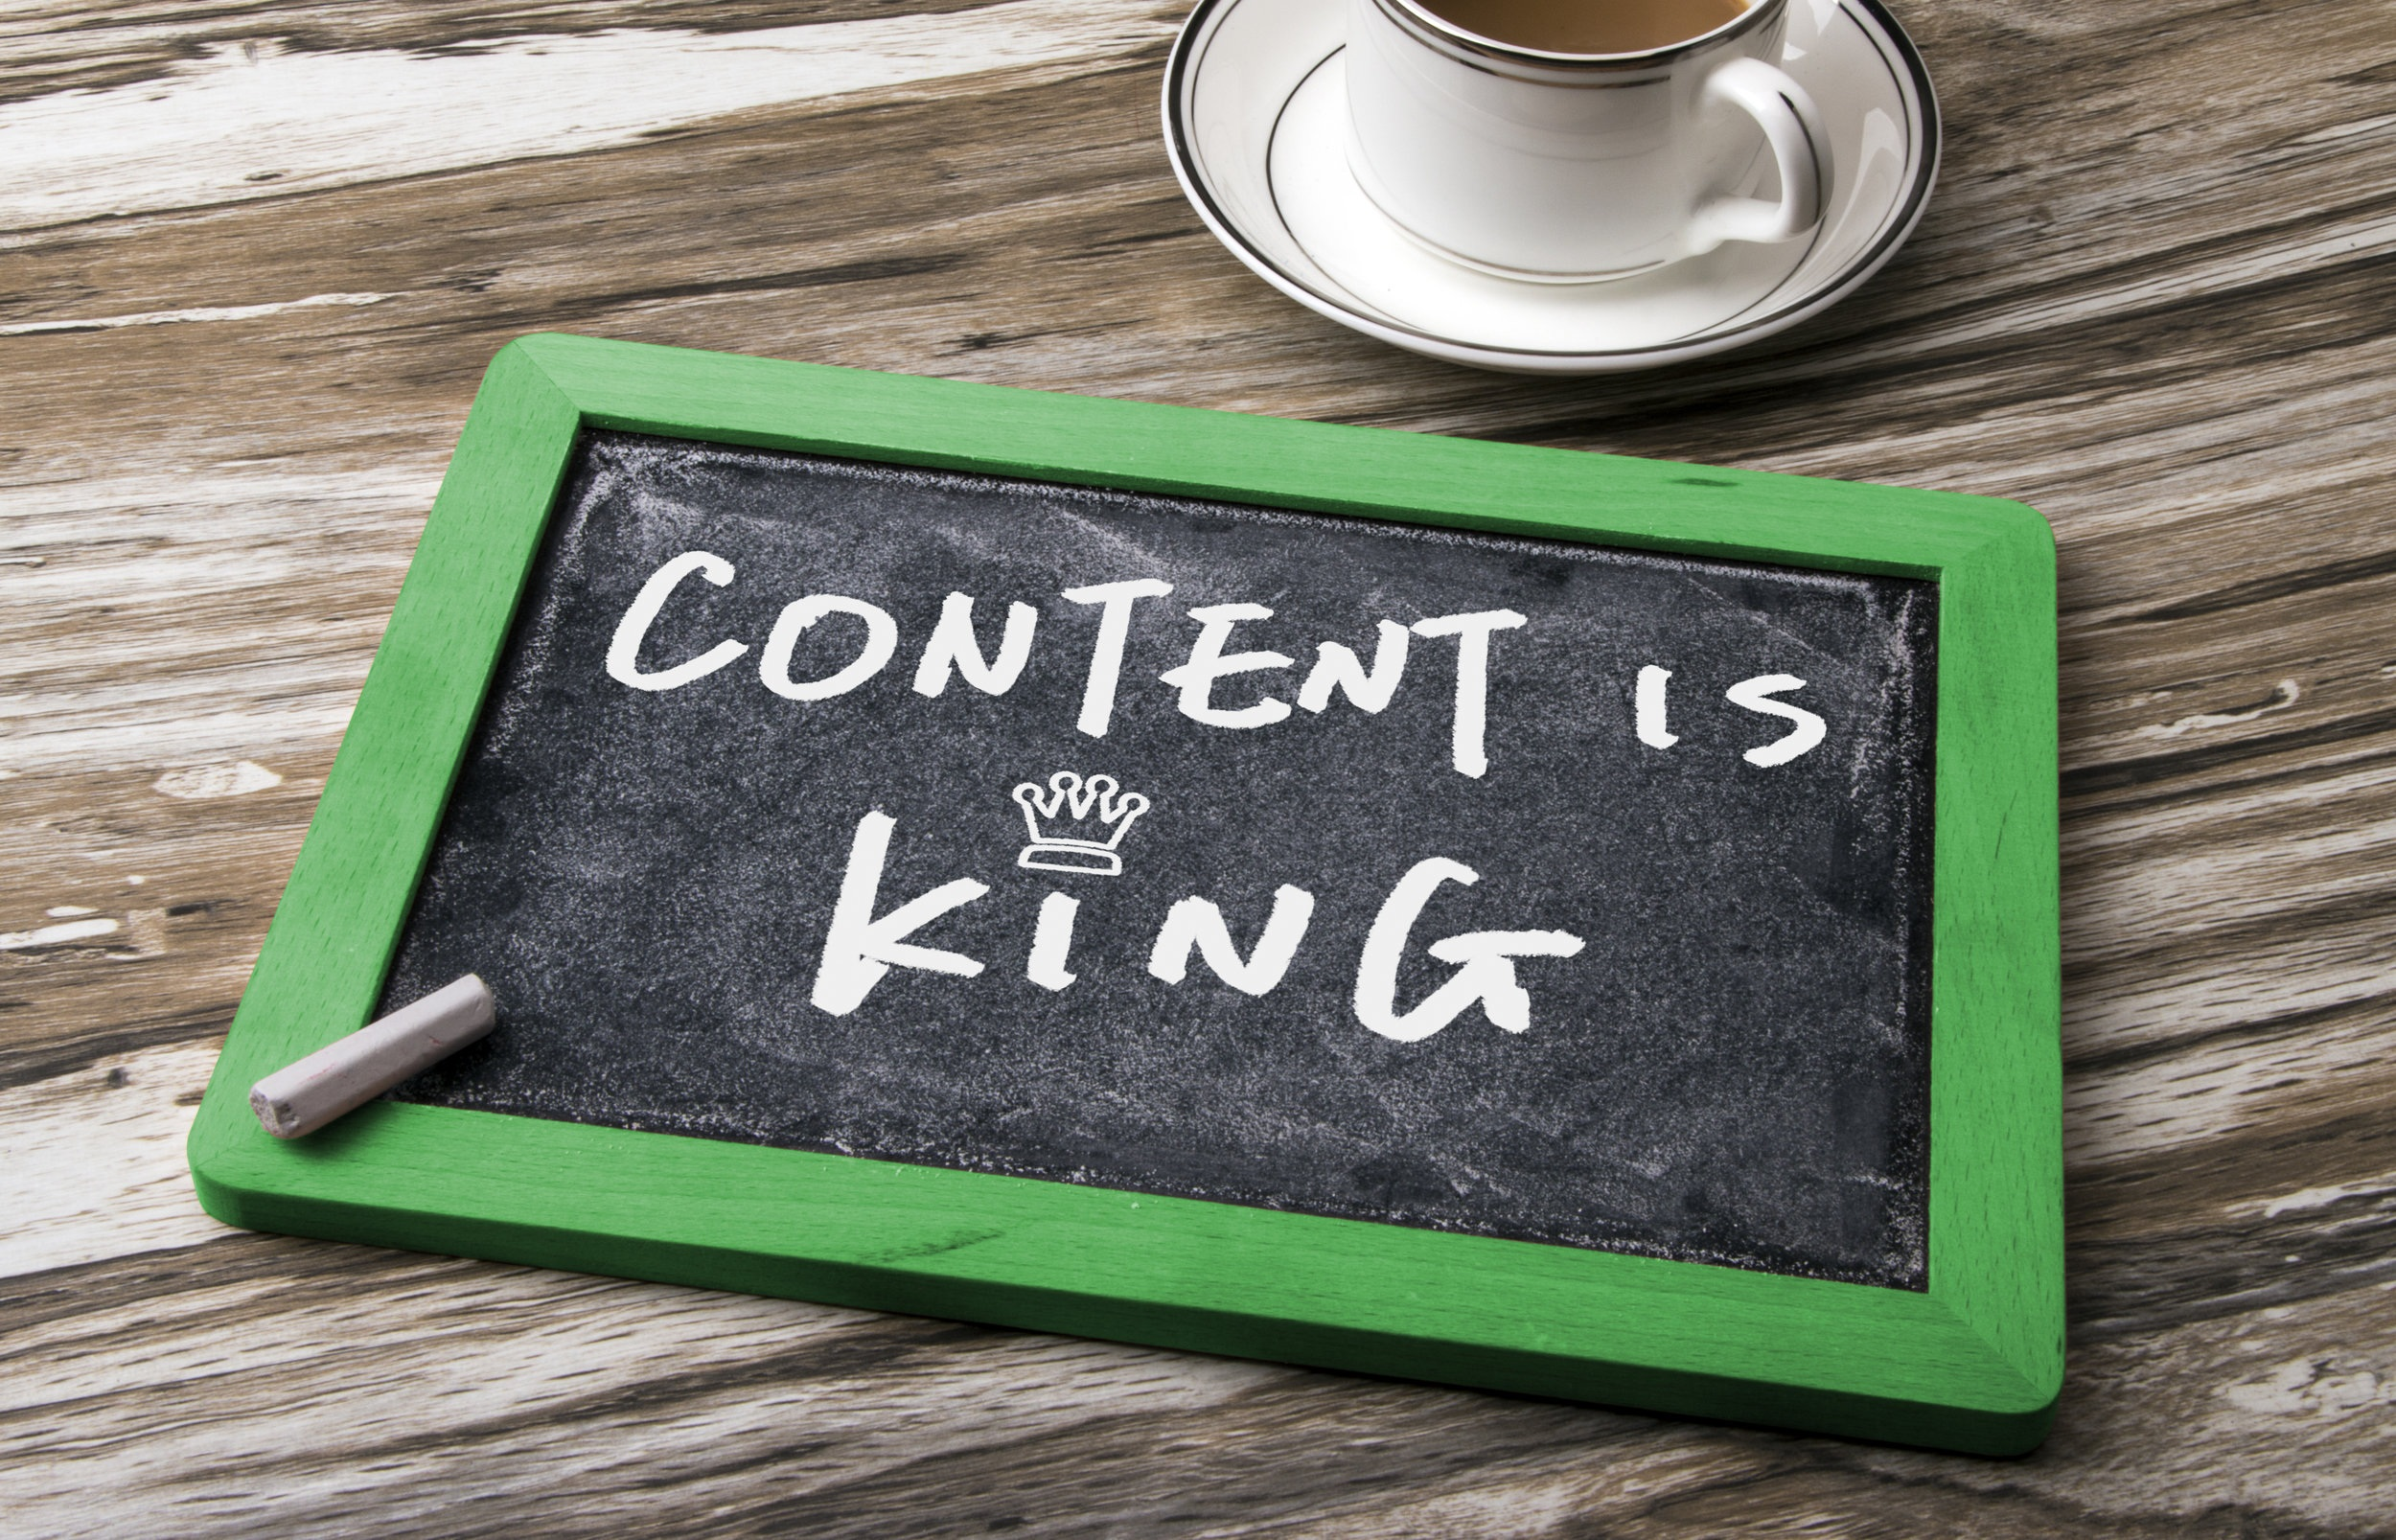 content+is+king.jpg